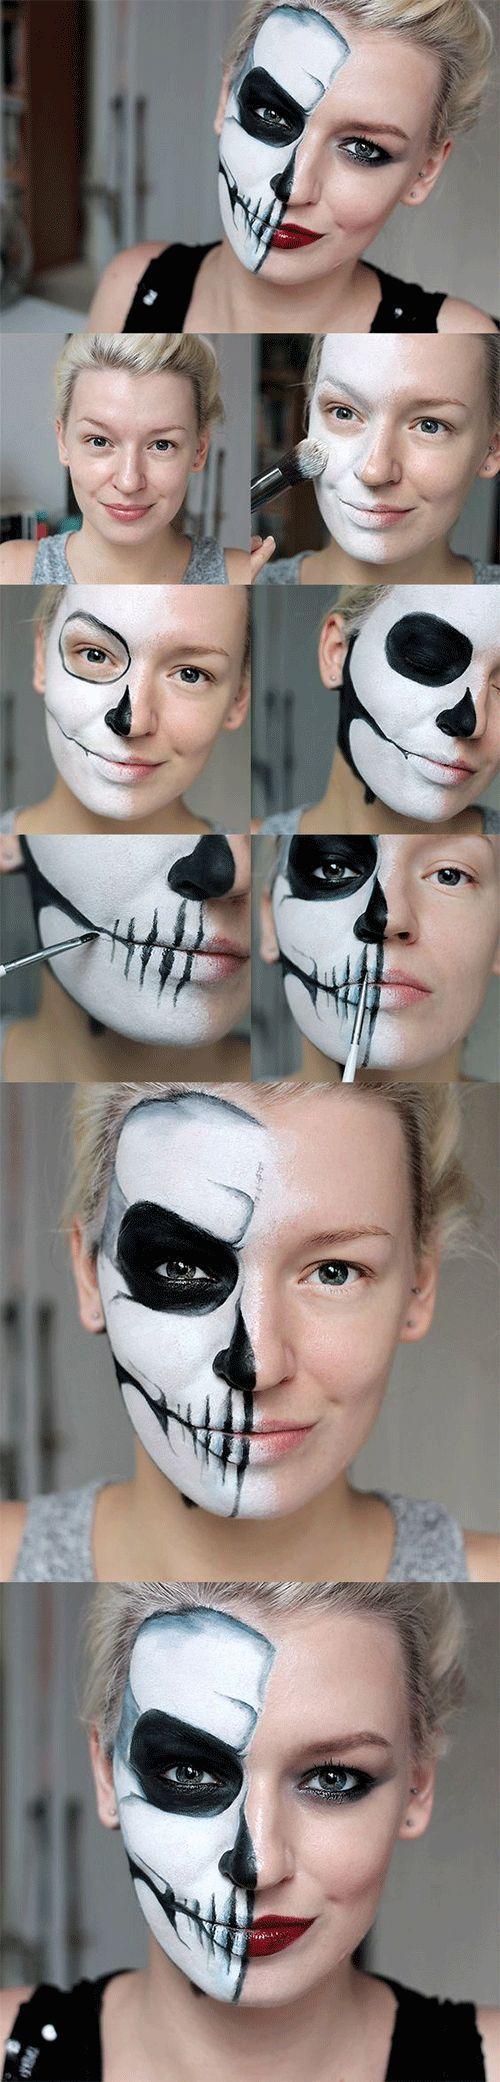 25-step-by-step-halloween-makeup-tutorials-for-beginners-2016-9 https://www.youtube.com/channel/UC76YOQIJa6Gej0_FuhRQxJg